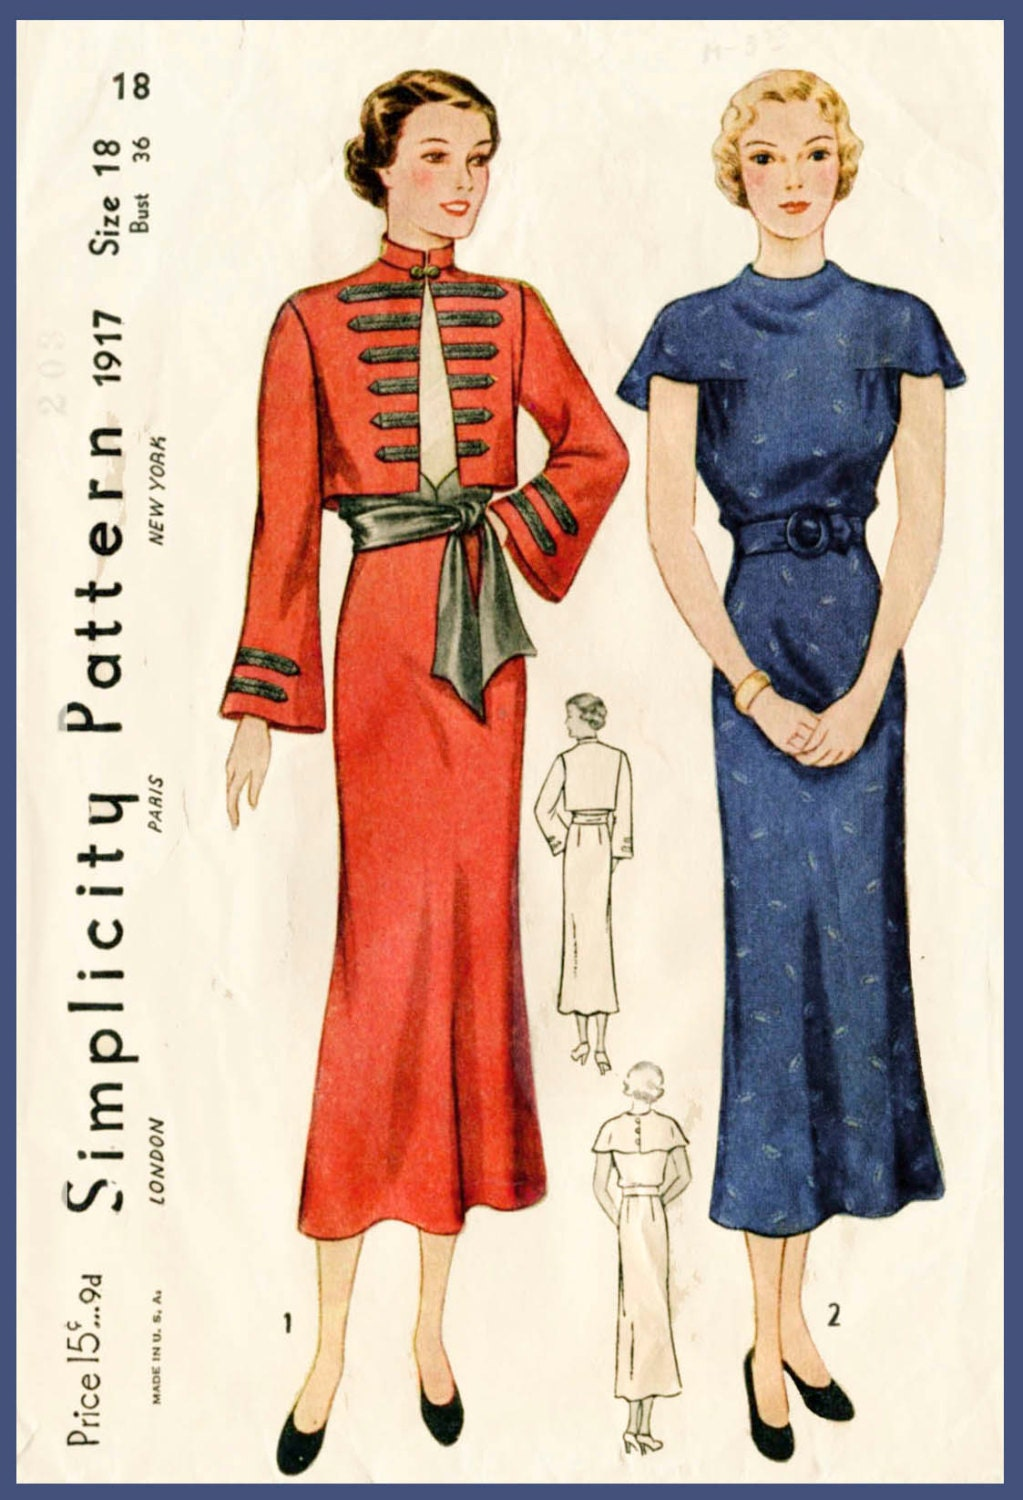 1930s 30s Vintage Sewing Pattern day dress sash skirt military